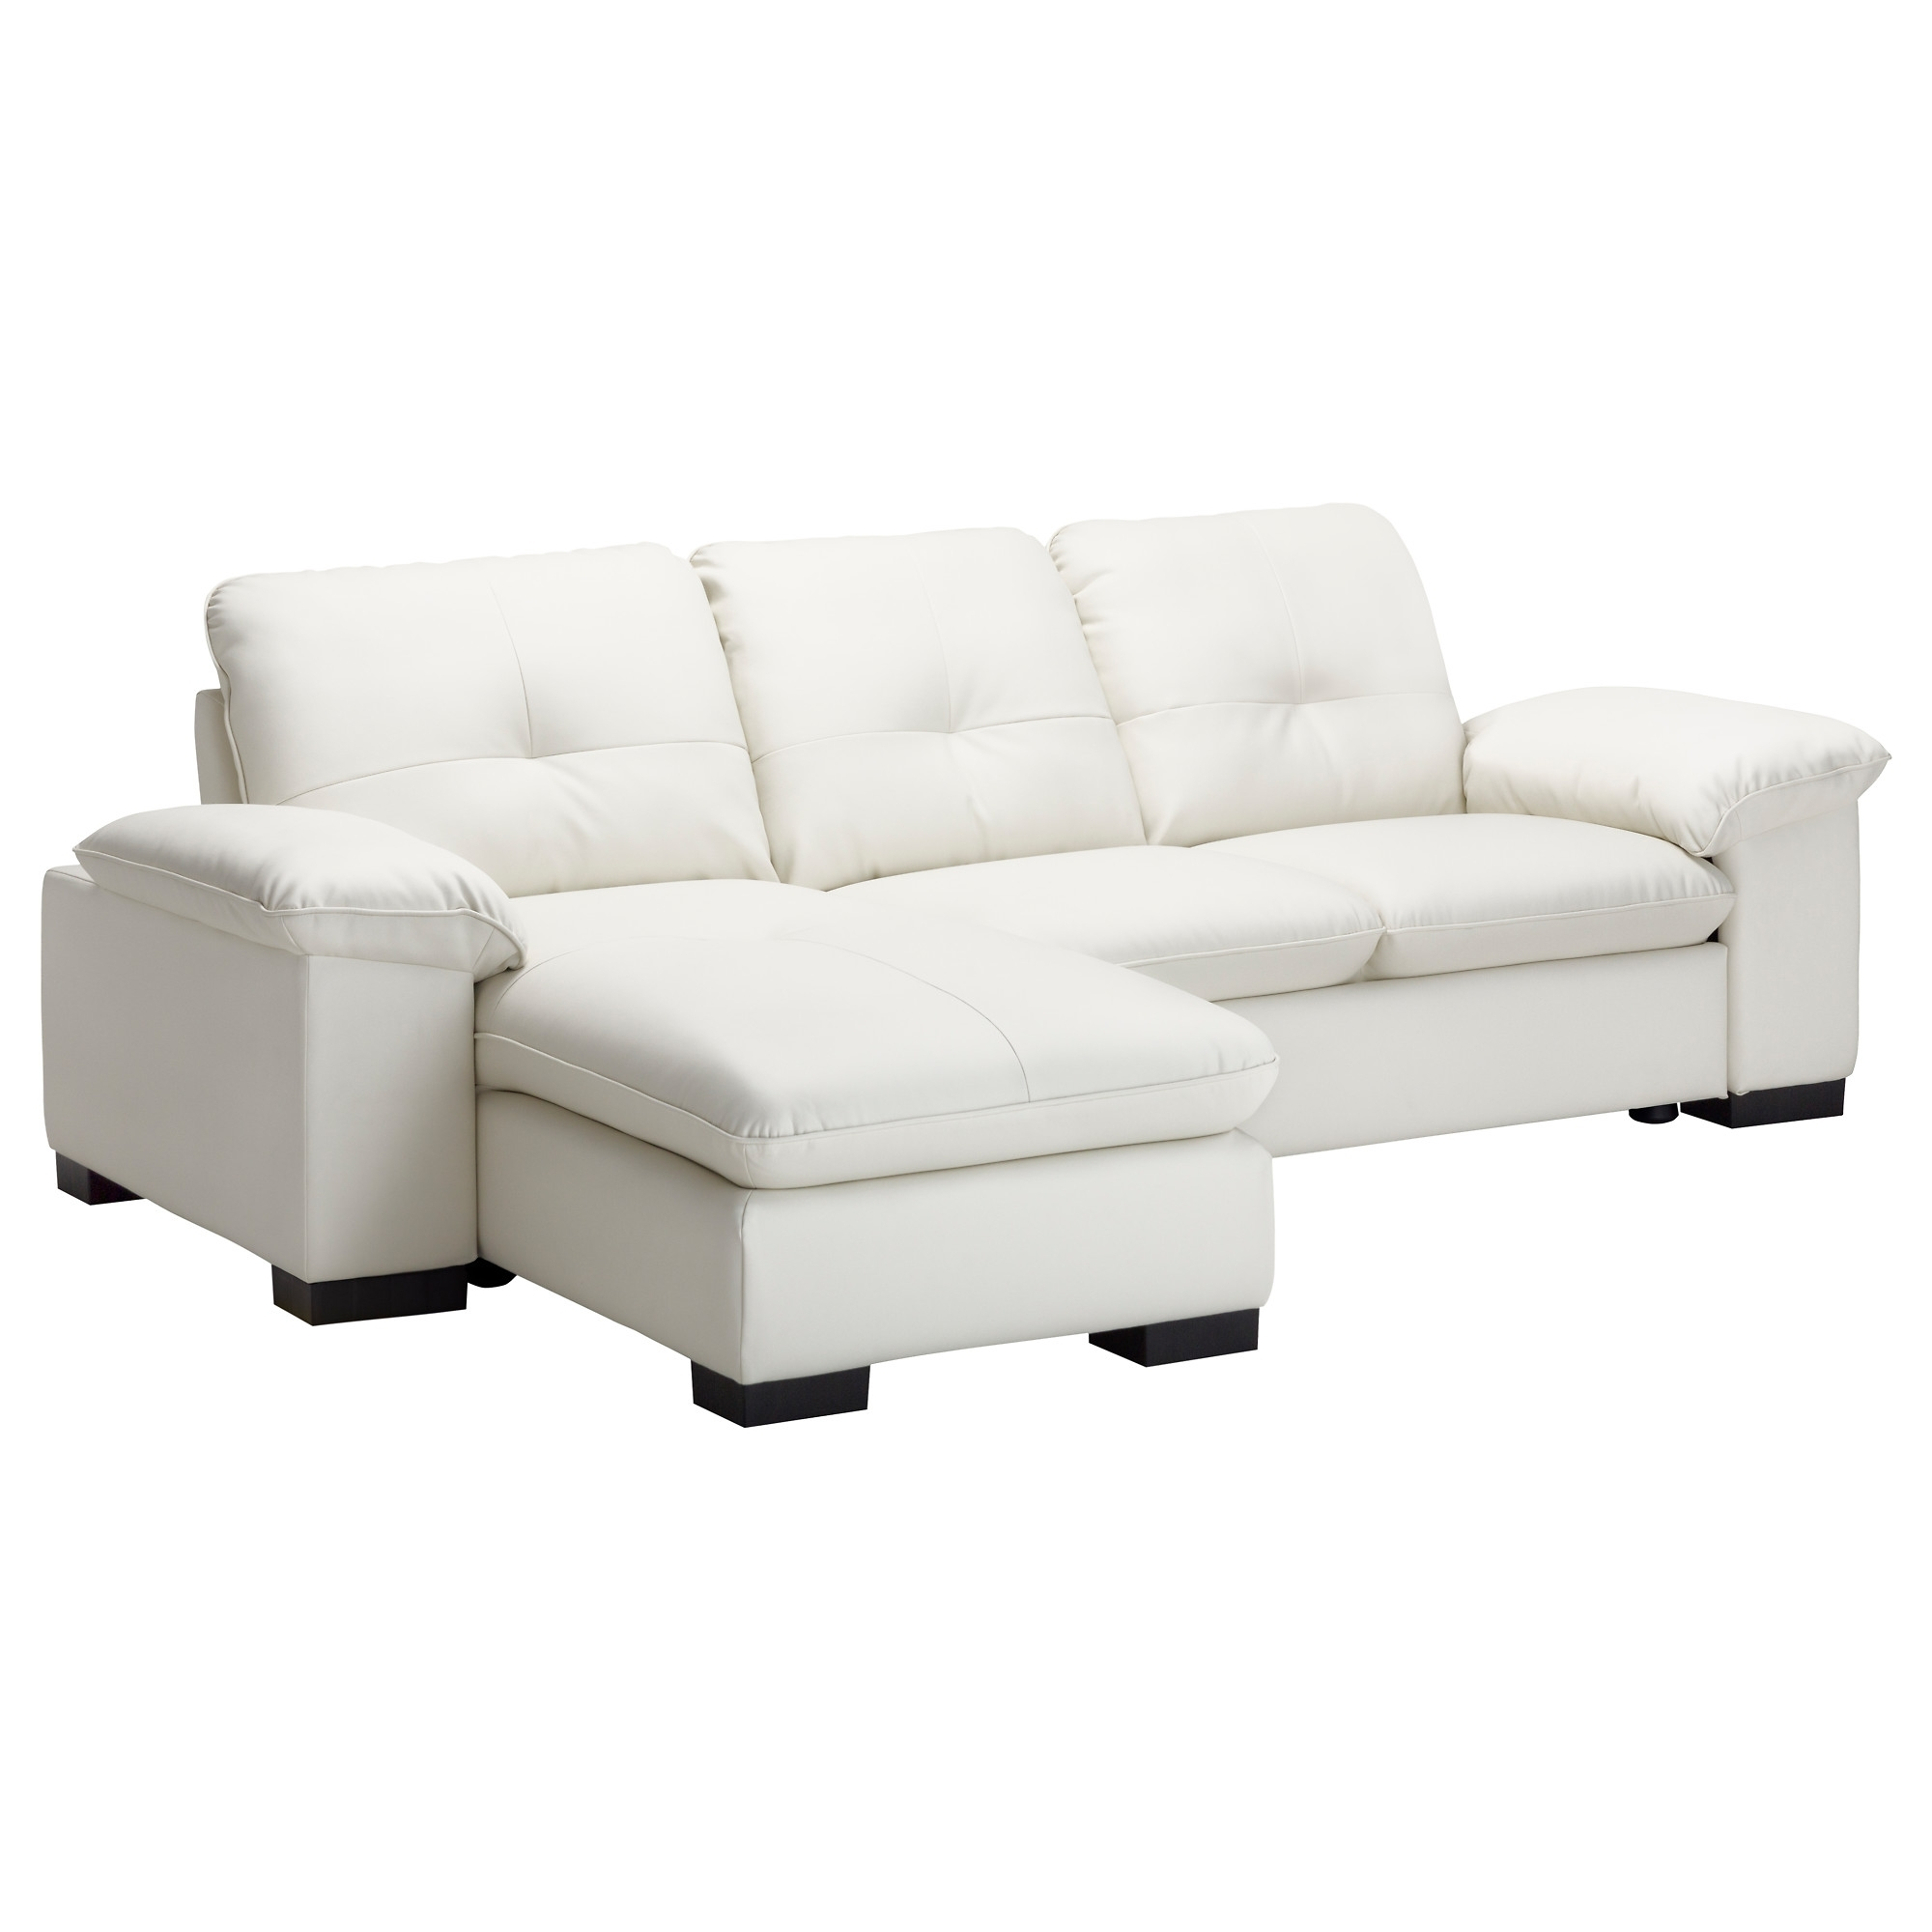 Ideas: Amazing Ikea Loveseat With New Contemporary Fixing Ability With Regard To Well Known Small Loveseats With Chaise (View 13 of 15)